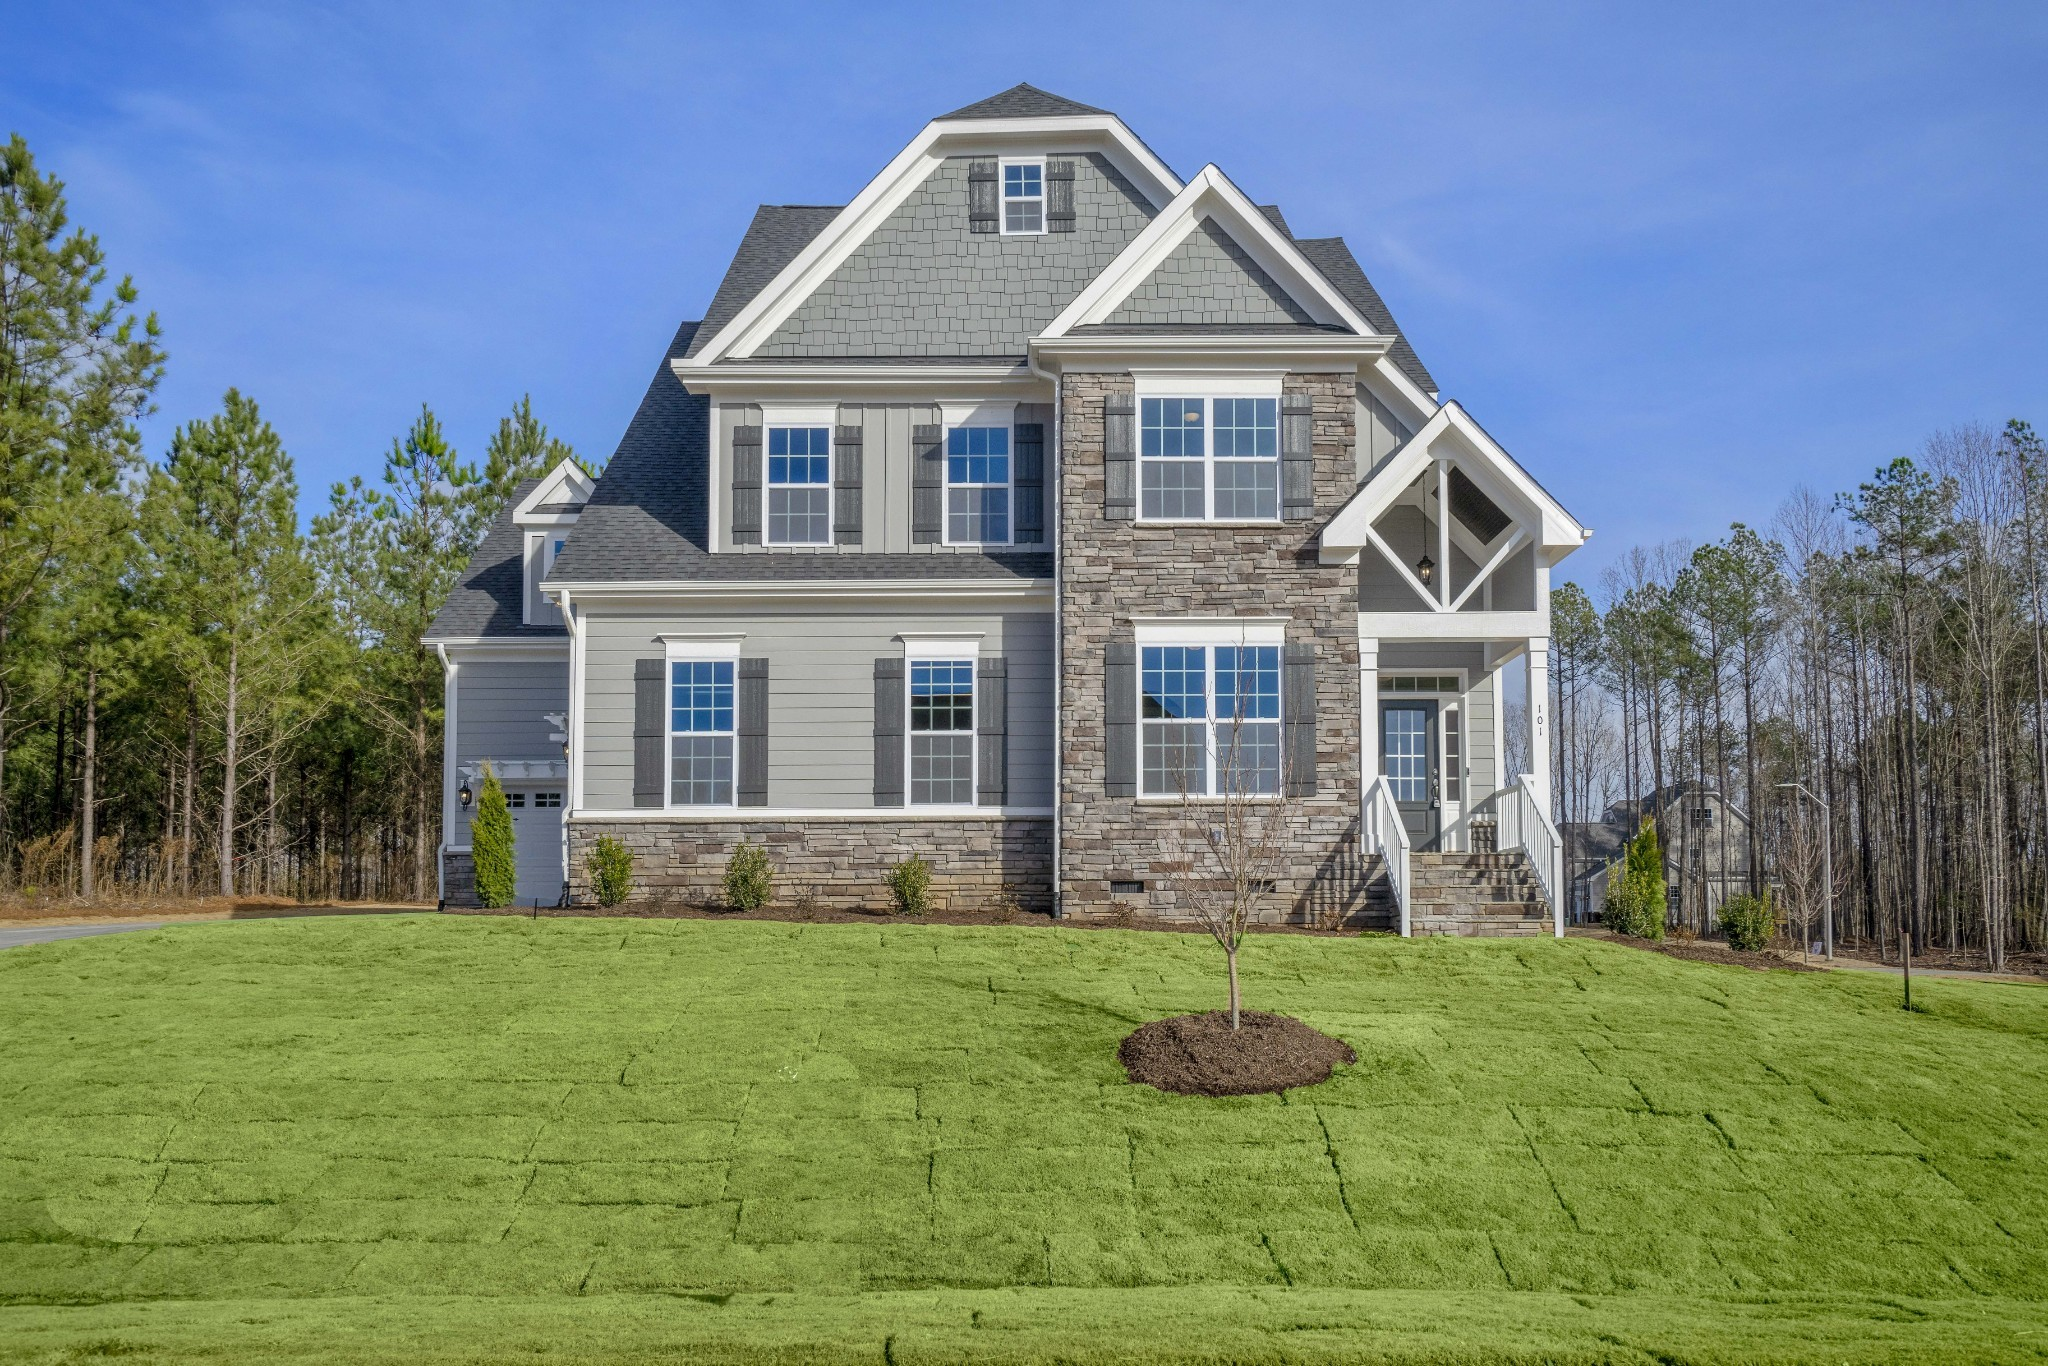 The Juniper at Ballentine Place, by Royal Oaks a Division of Mattamy Homes